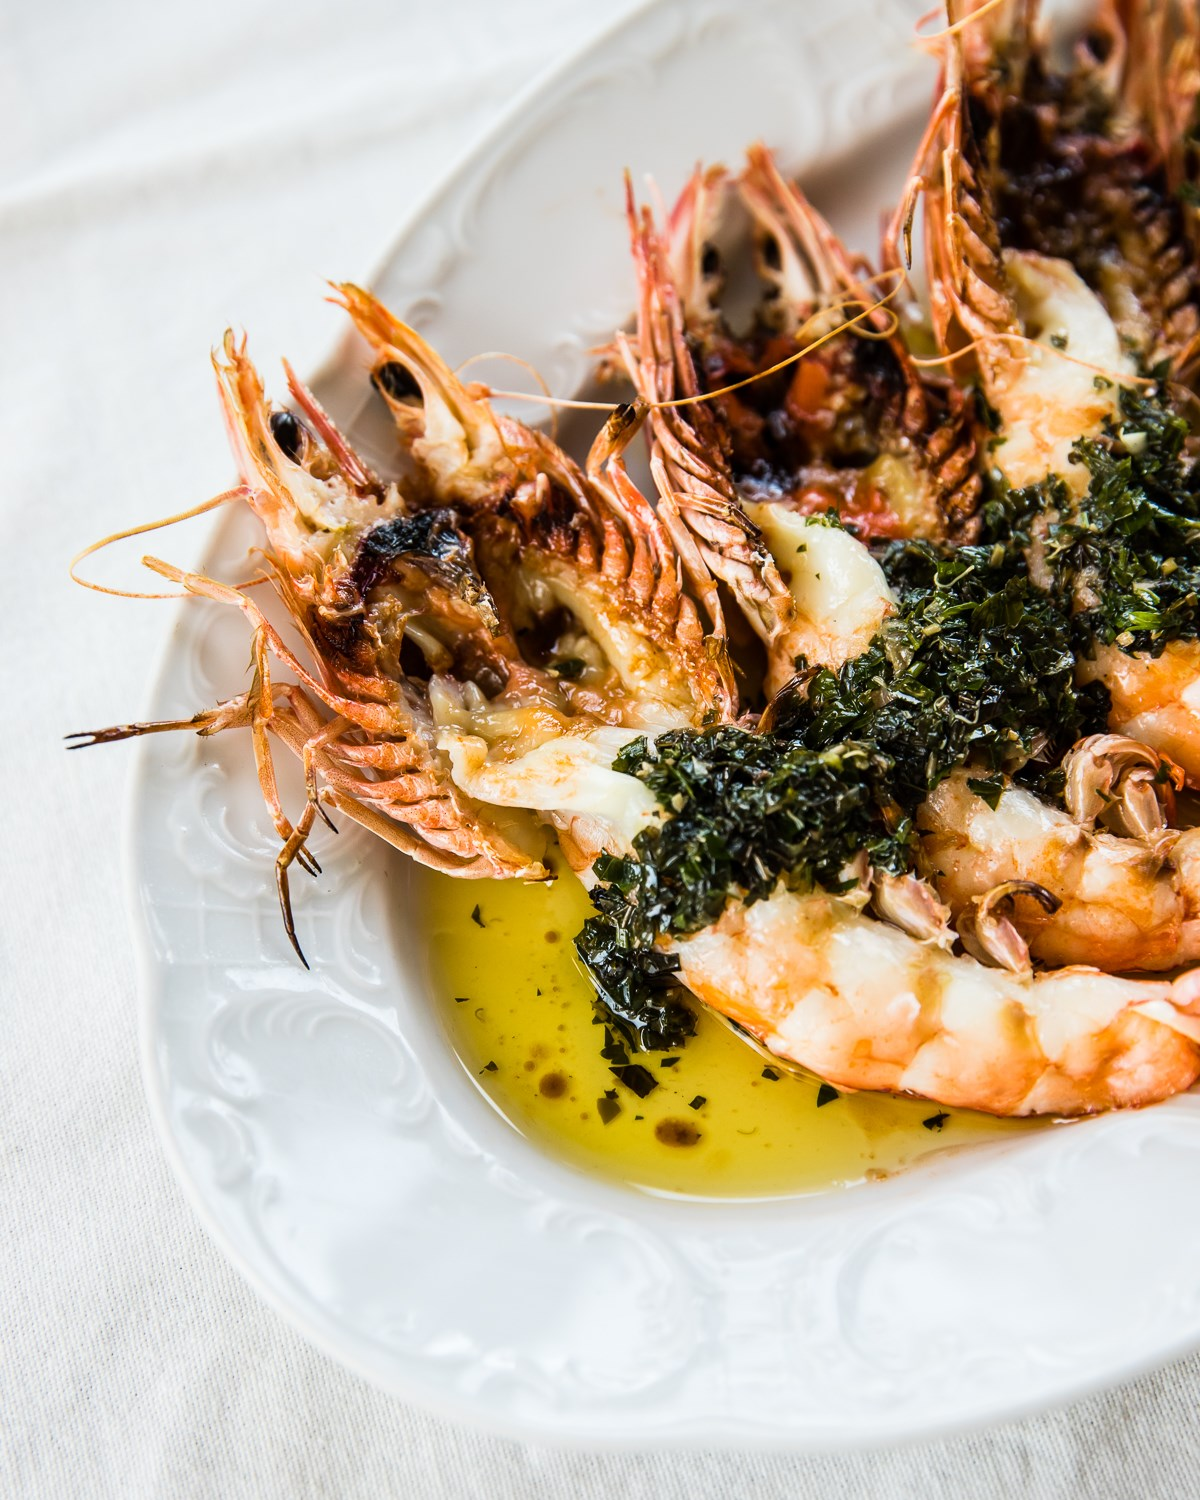 a plate of grilled prawns drizzled in oil